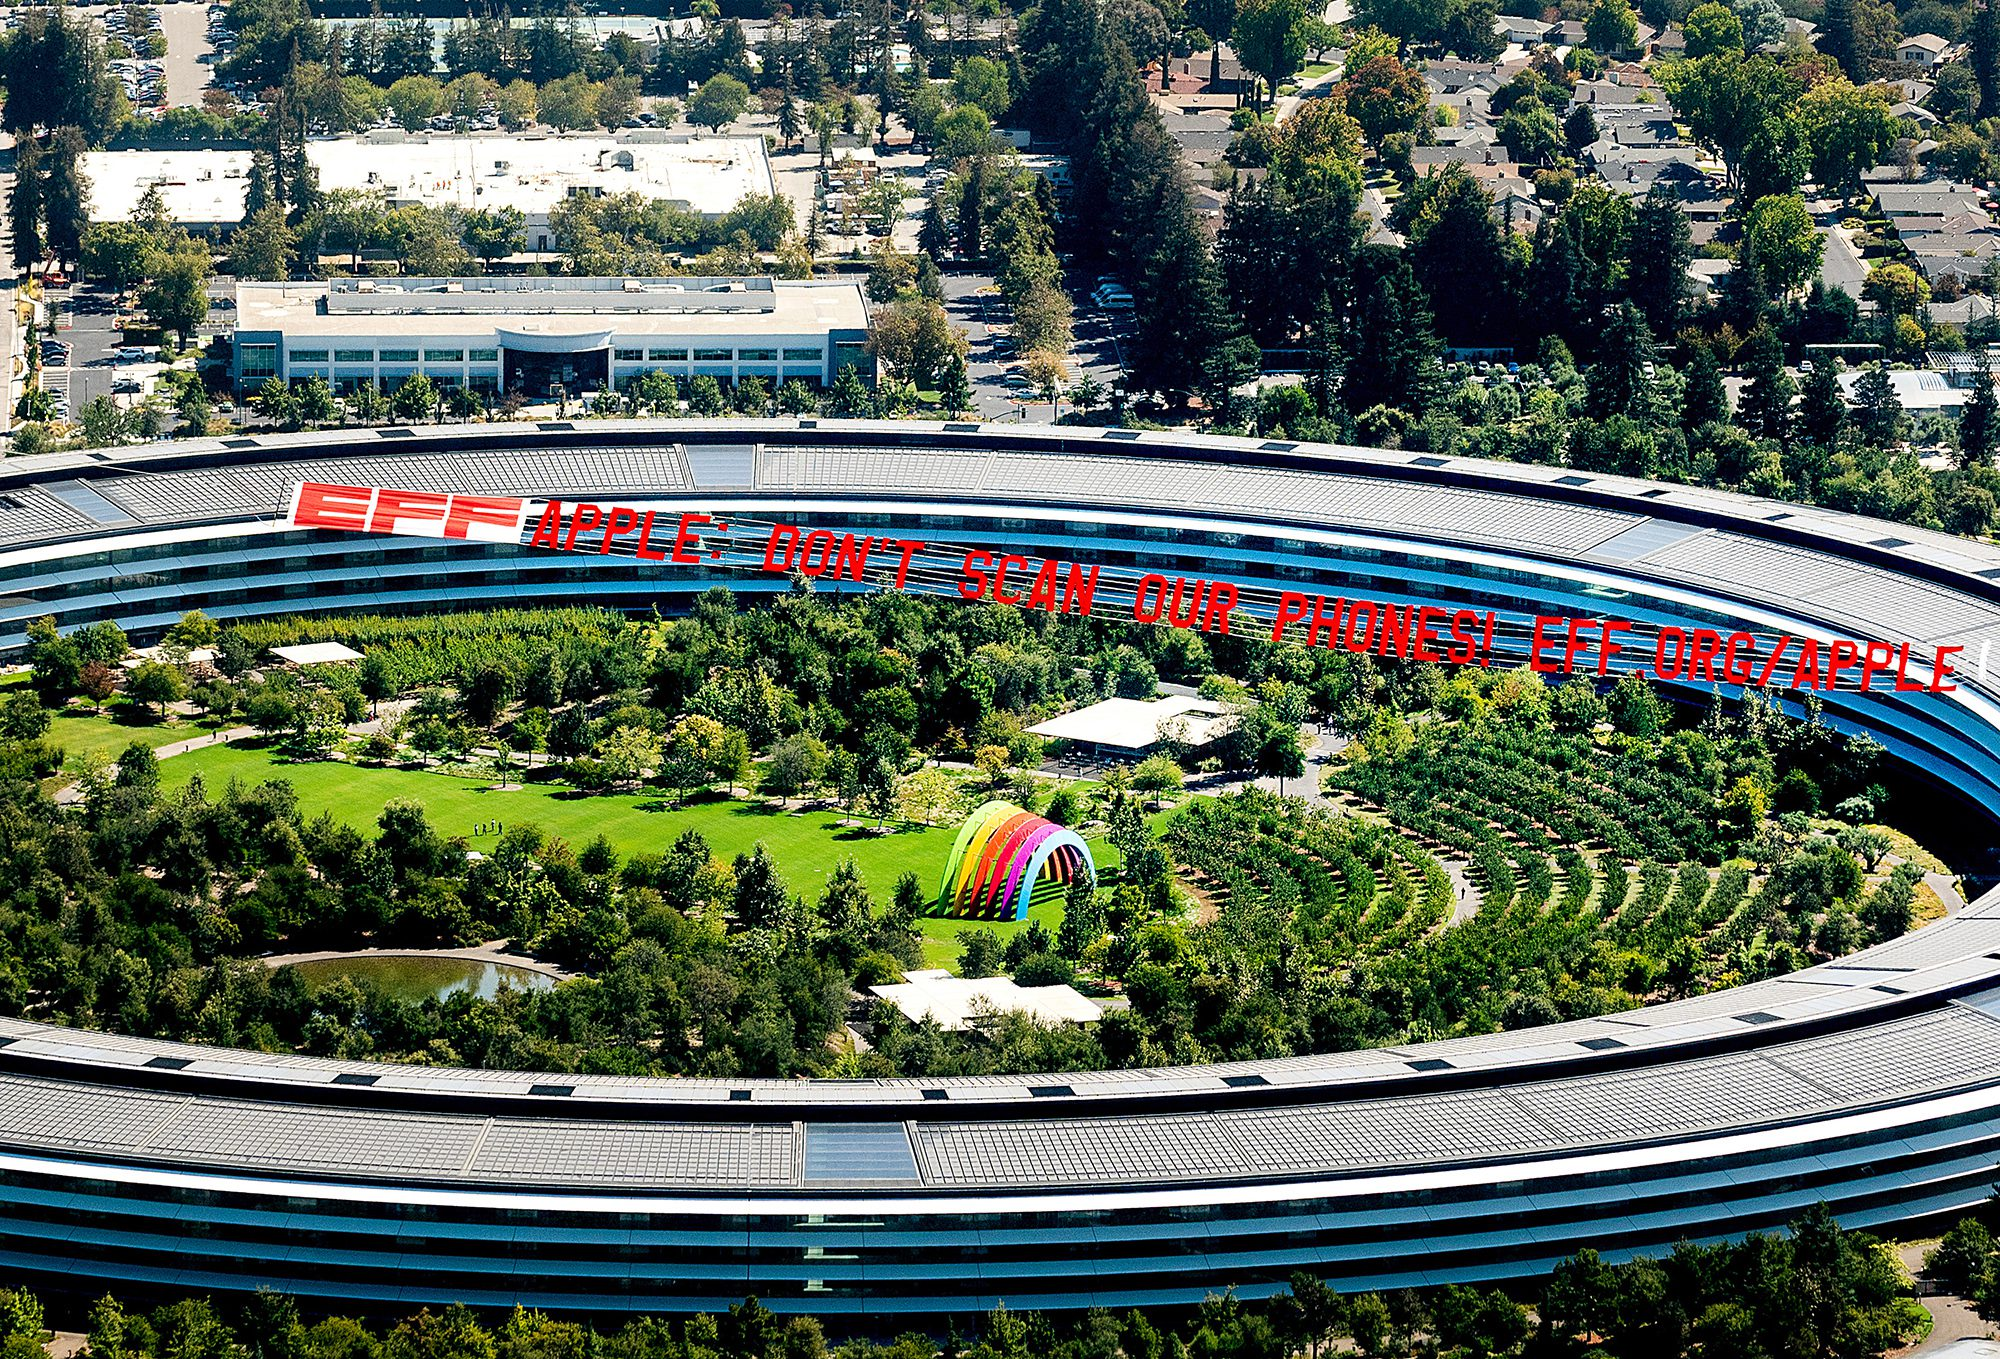 A plane flies over Apple's HQ with a banner